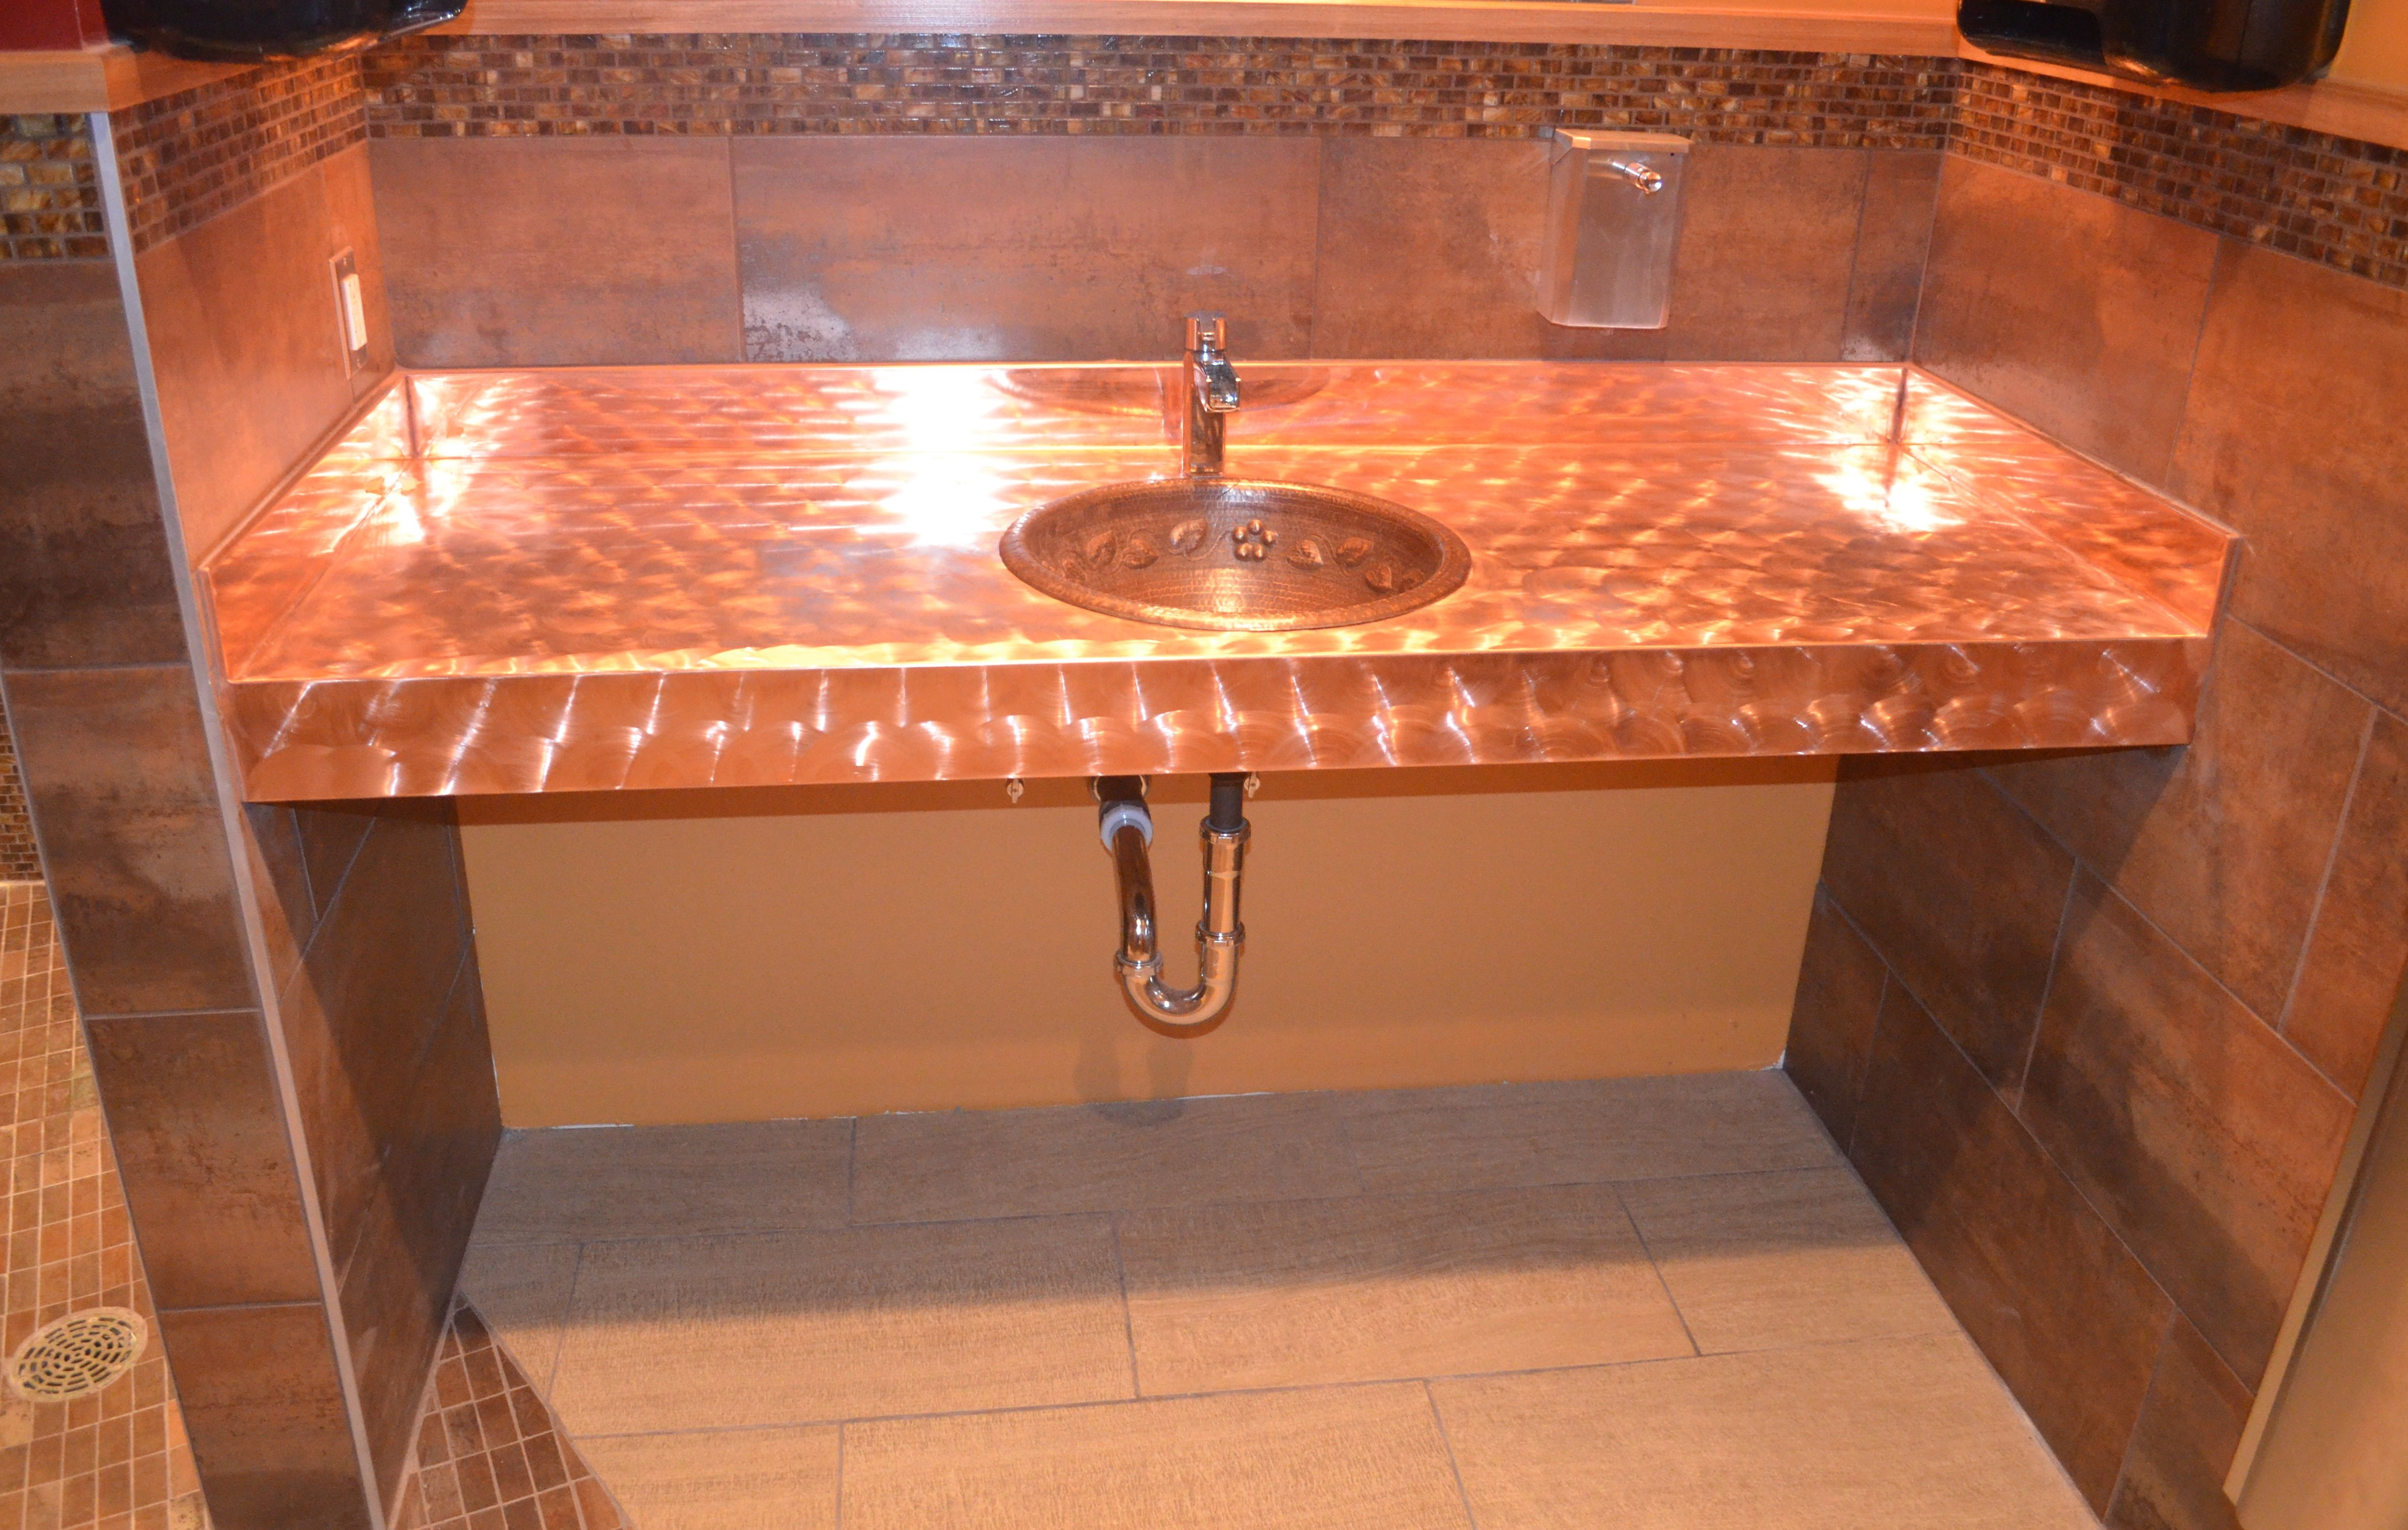 Western Countertops Copper Counter Top With Copper Sink Contractor Western